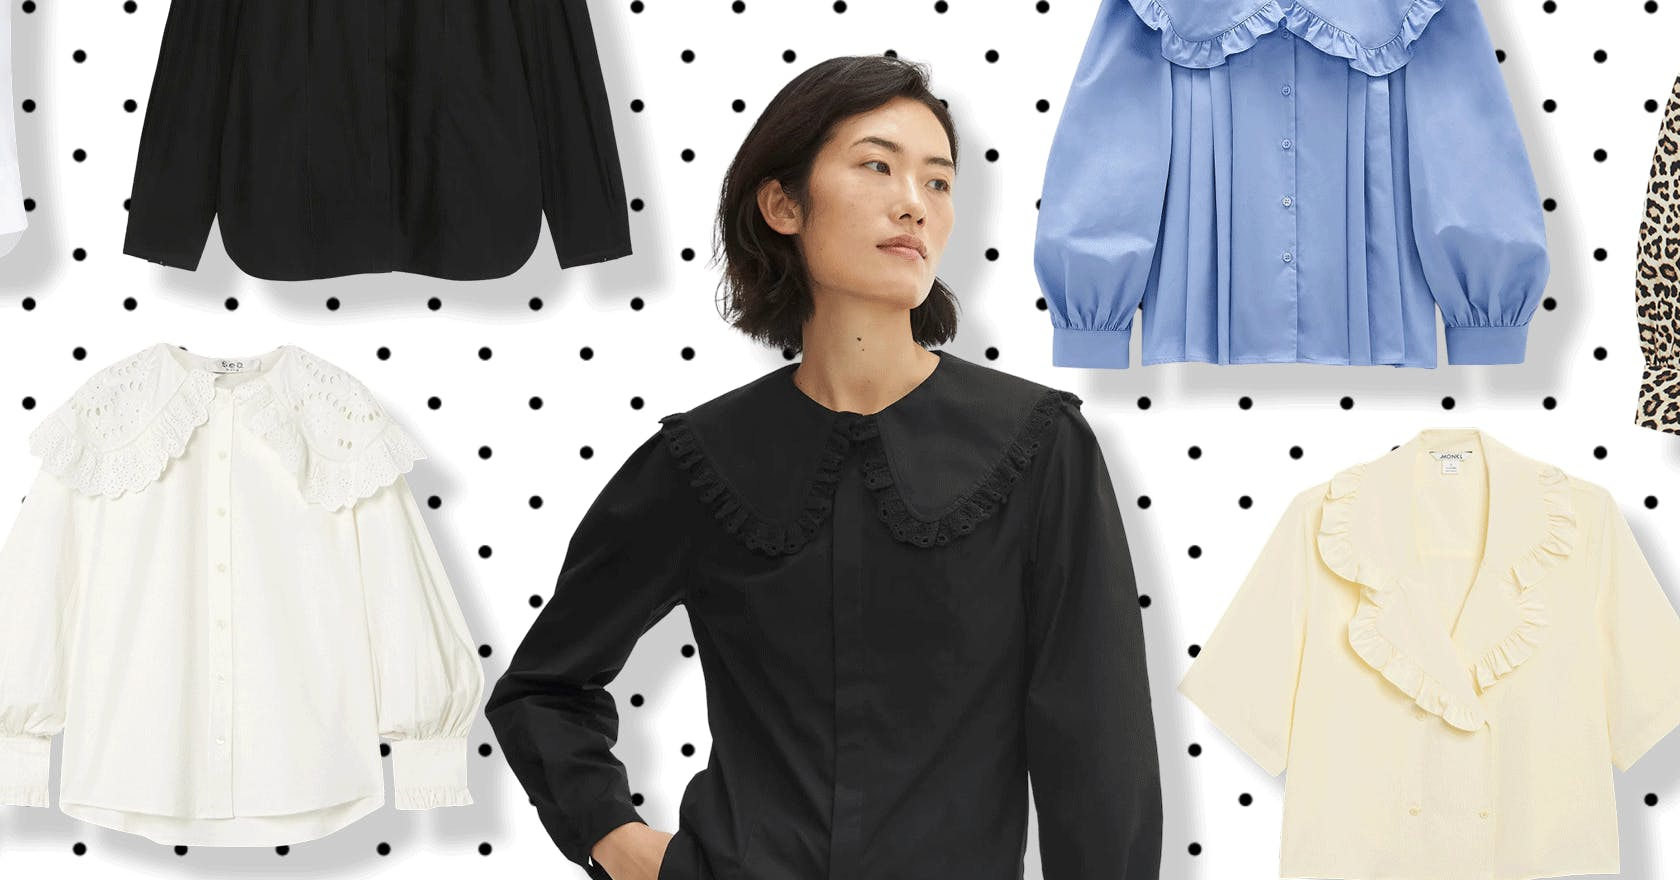 This must-have shirt is bringing big collar engery